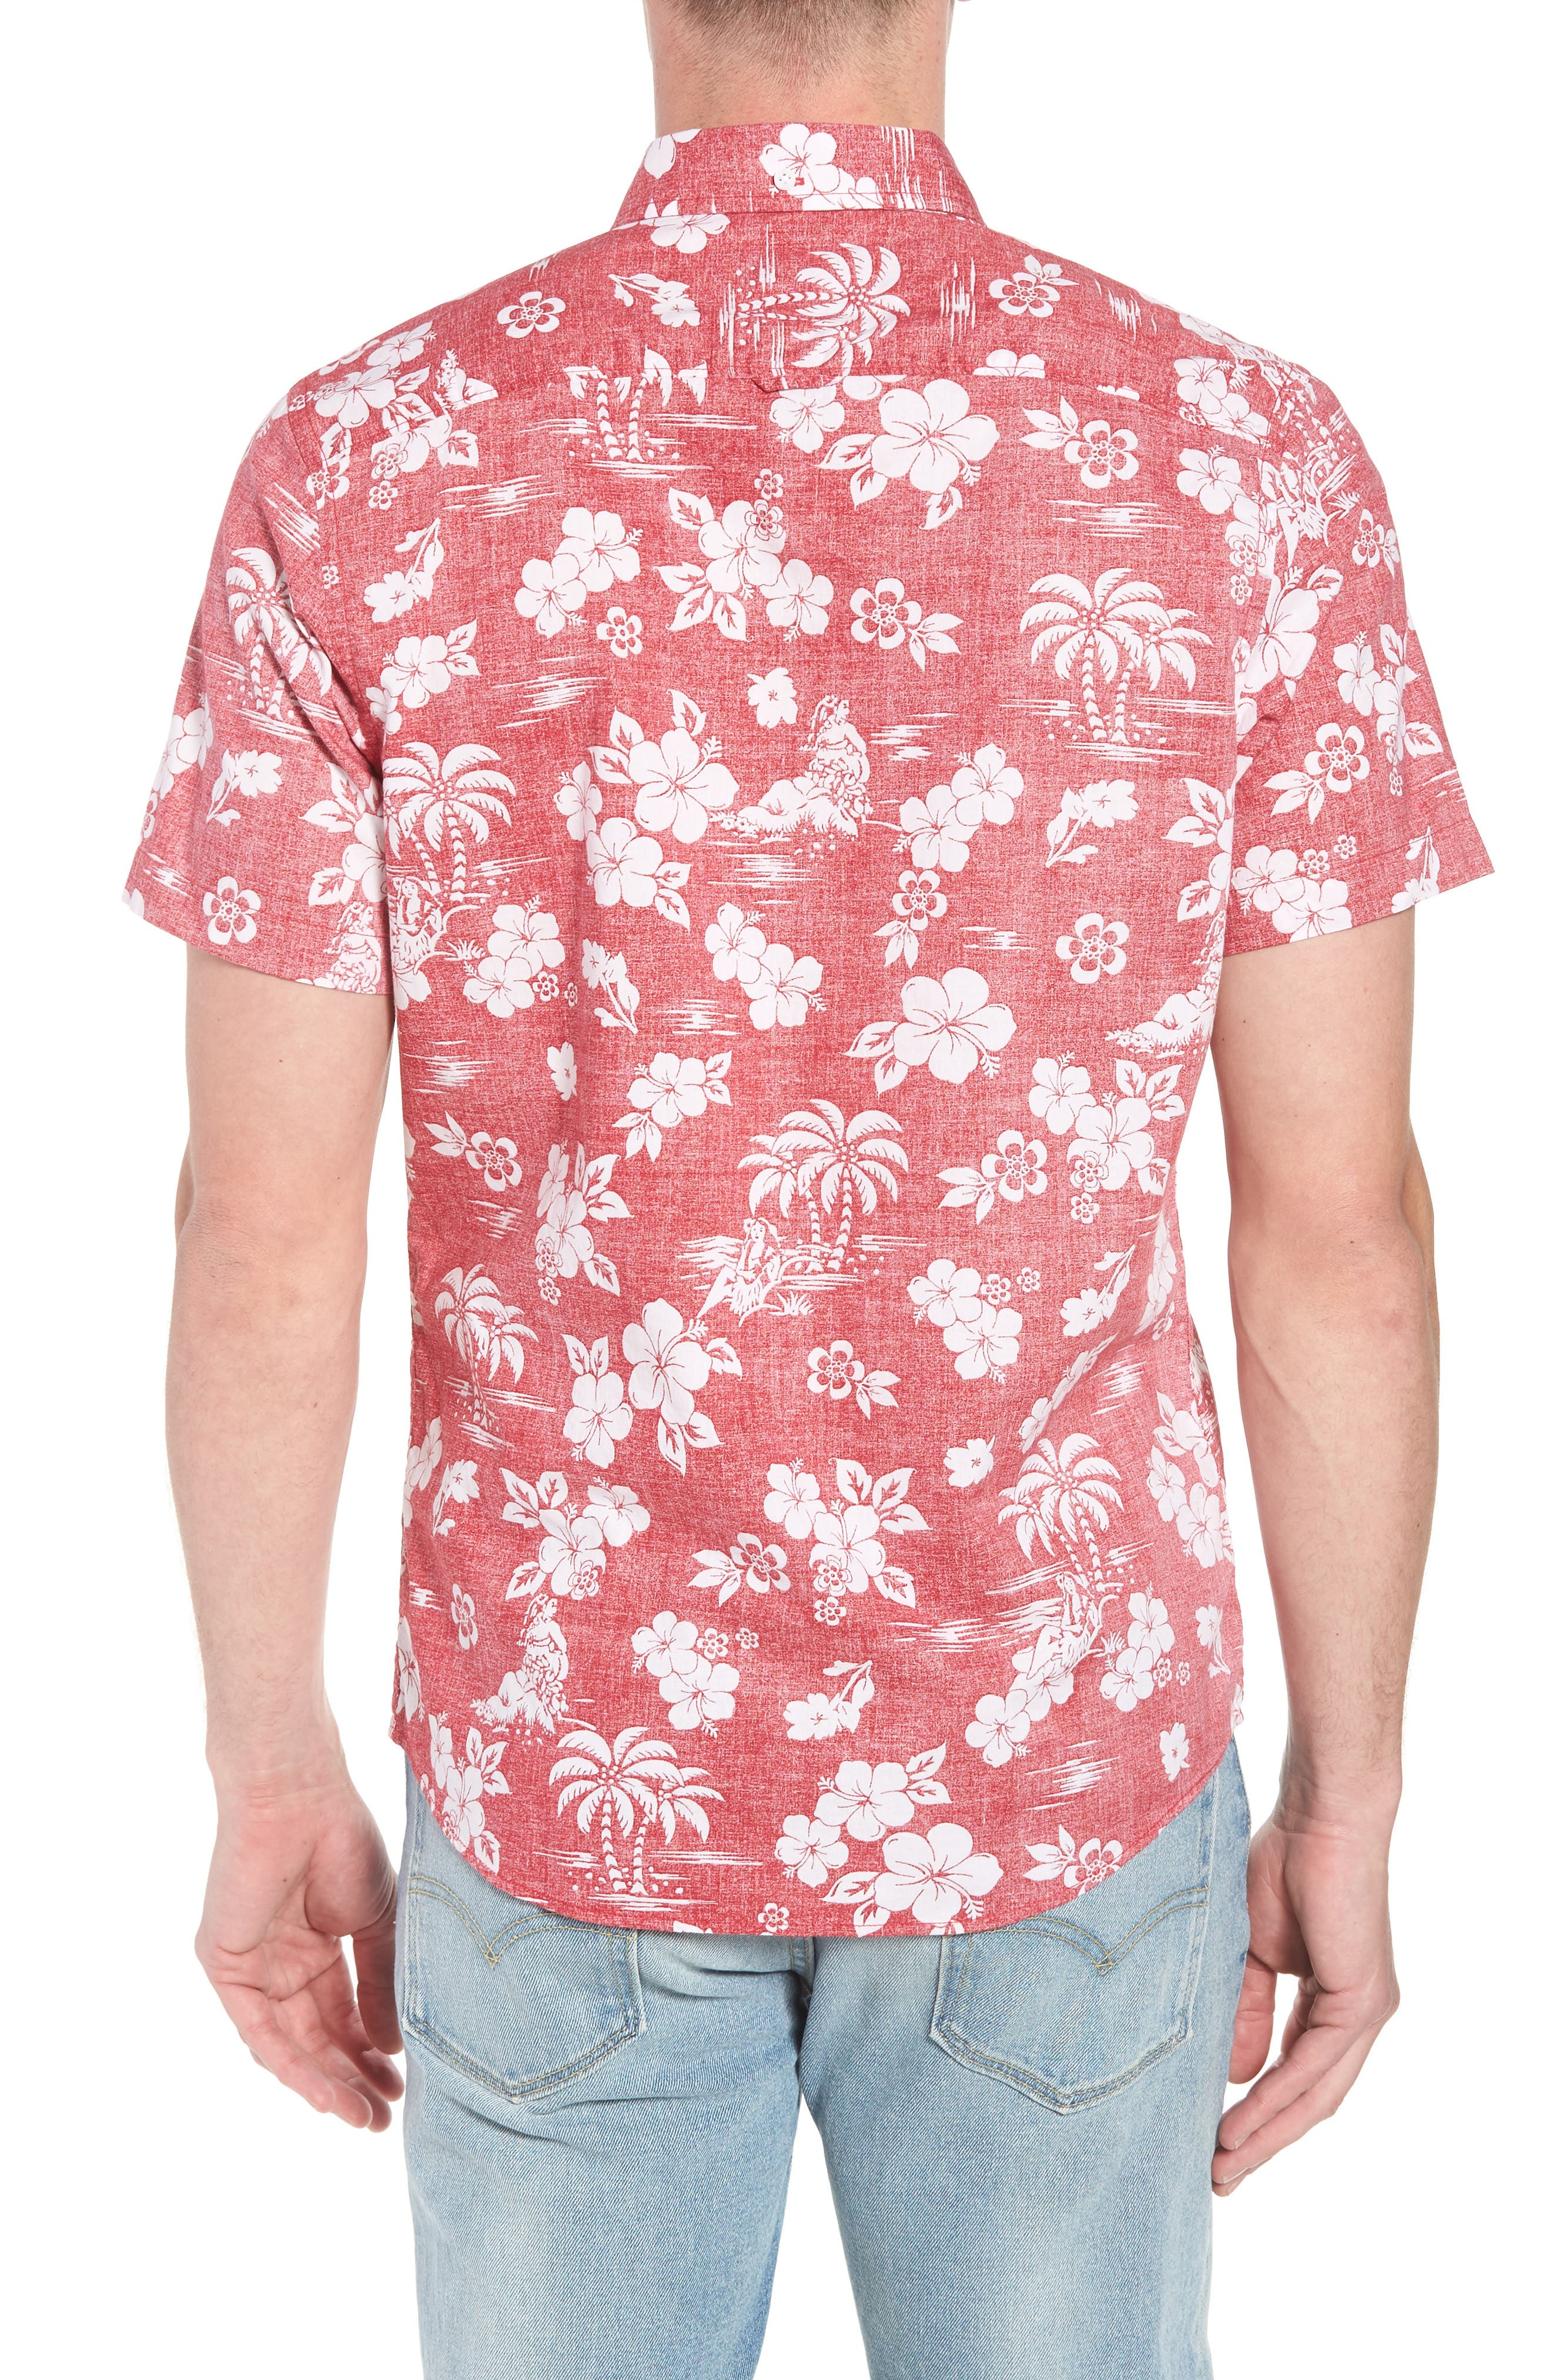 Trim Fit Island Print Sport Shirt,                             Alternate thumbnail 3, color,                             Red Pompeii Hula Girls